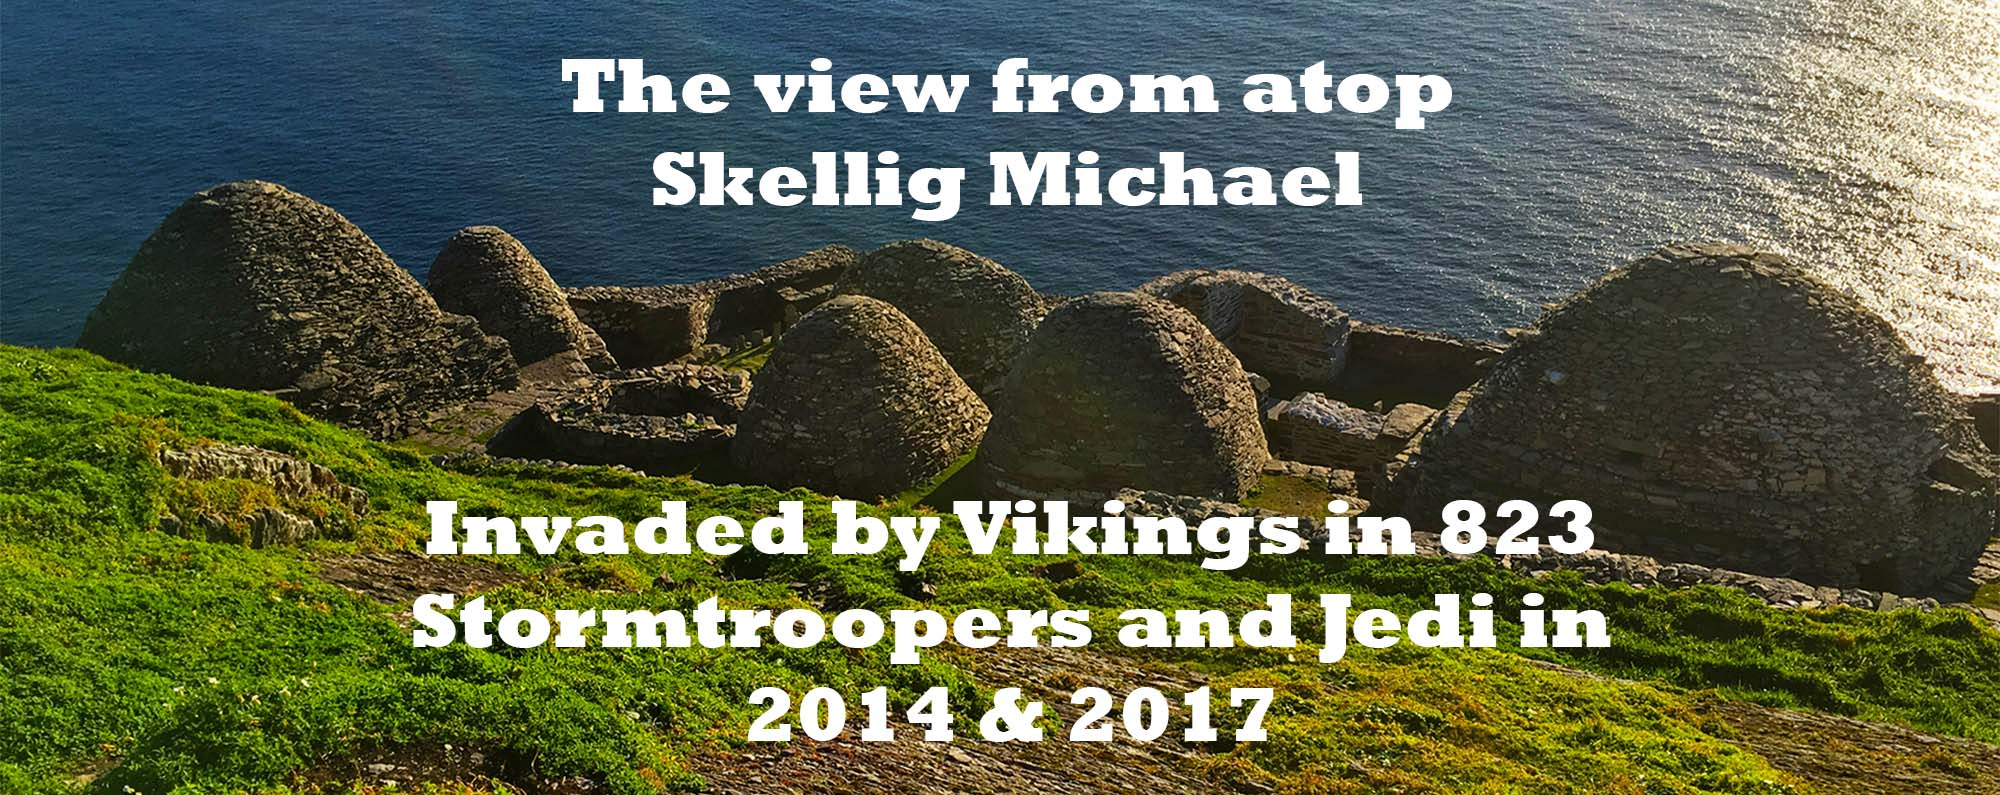 beehive hust and invaders information on skellig michael